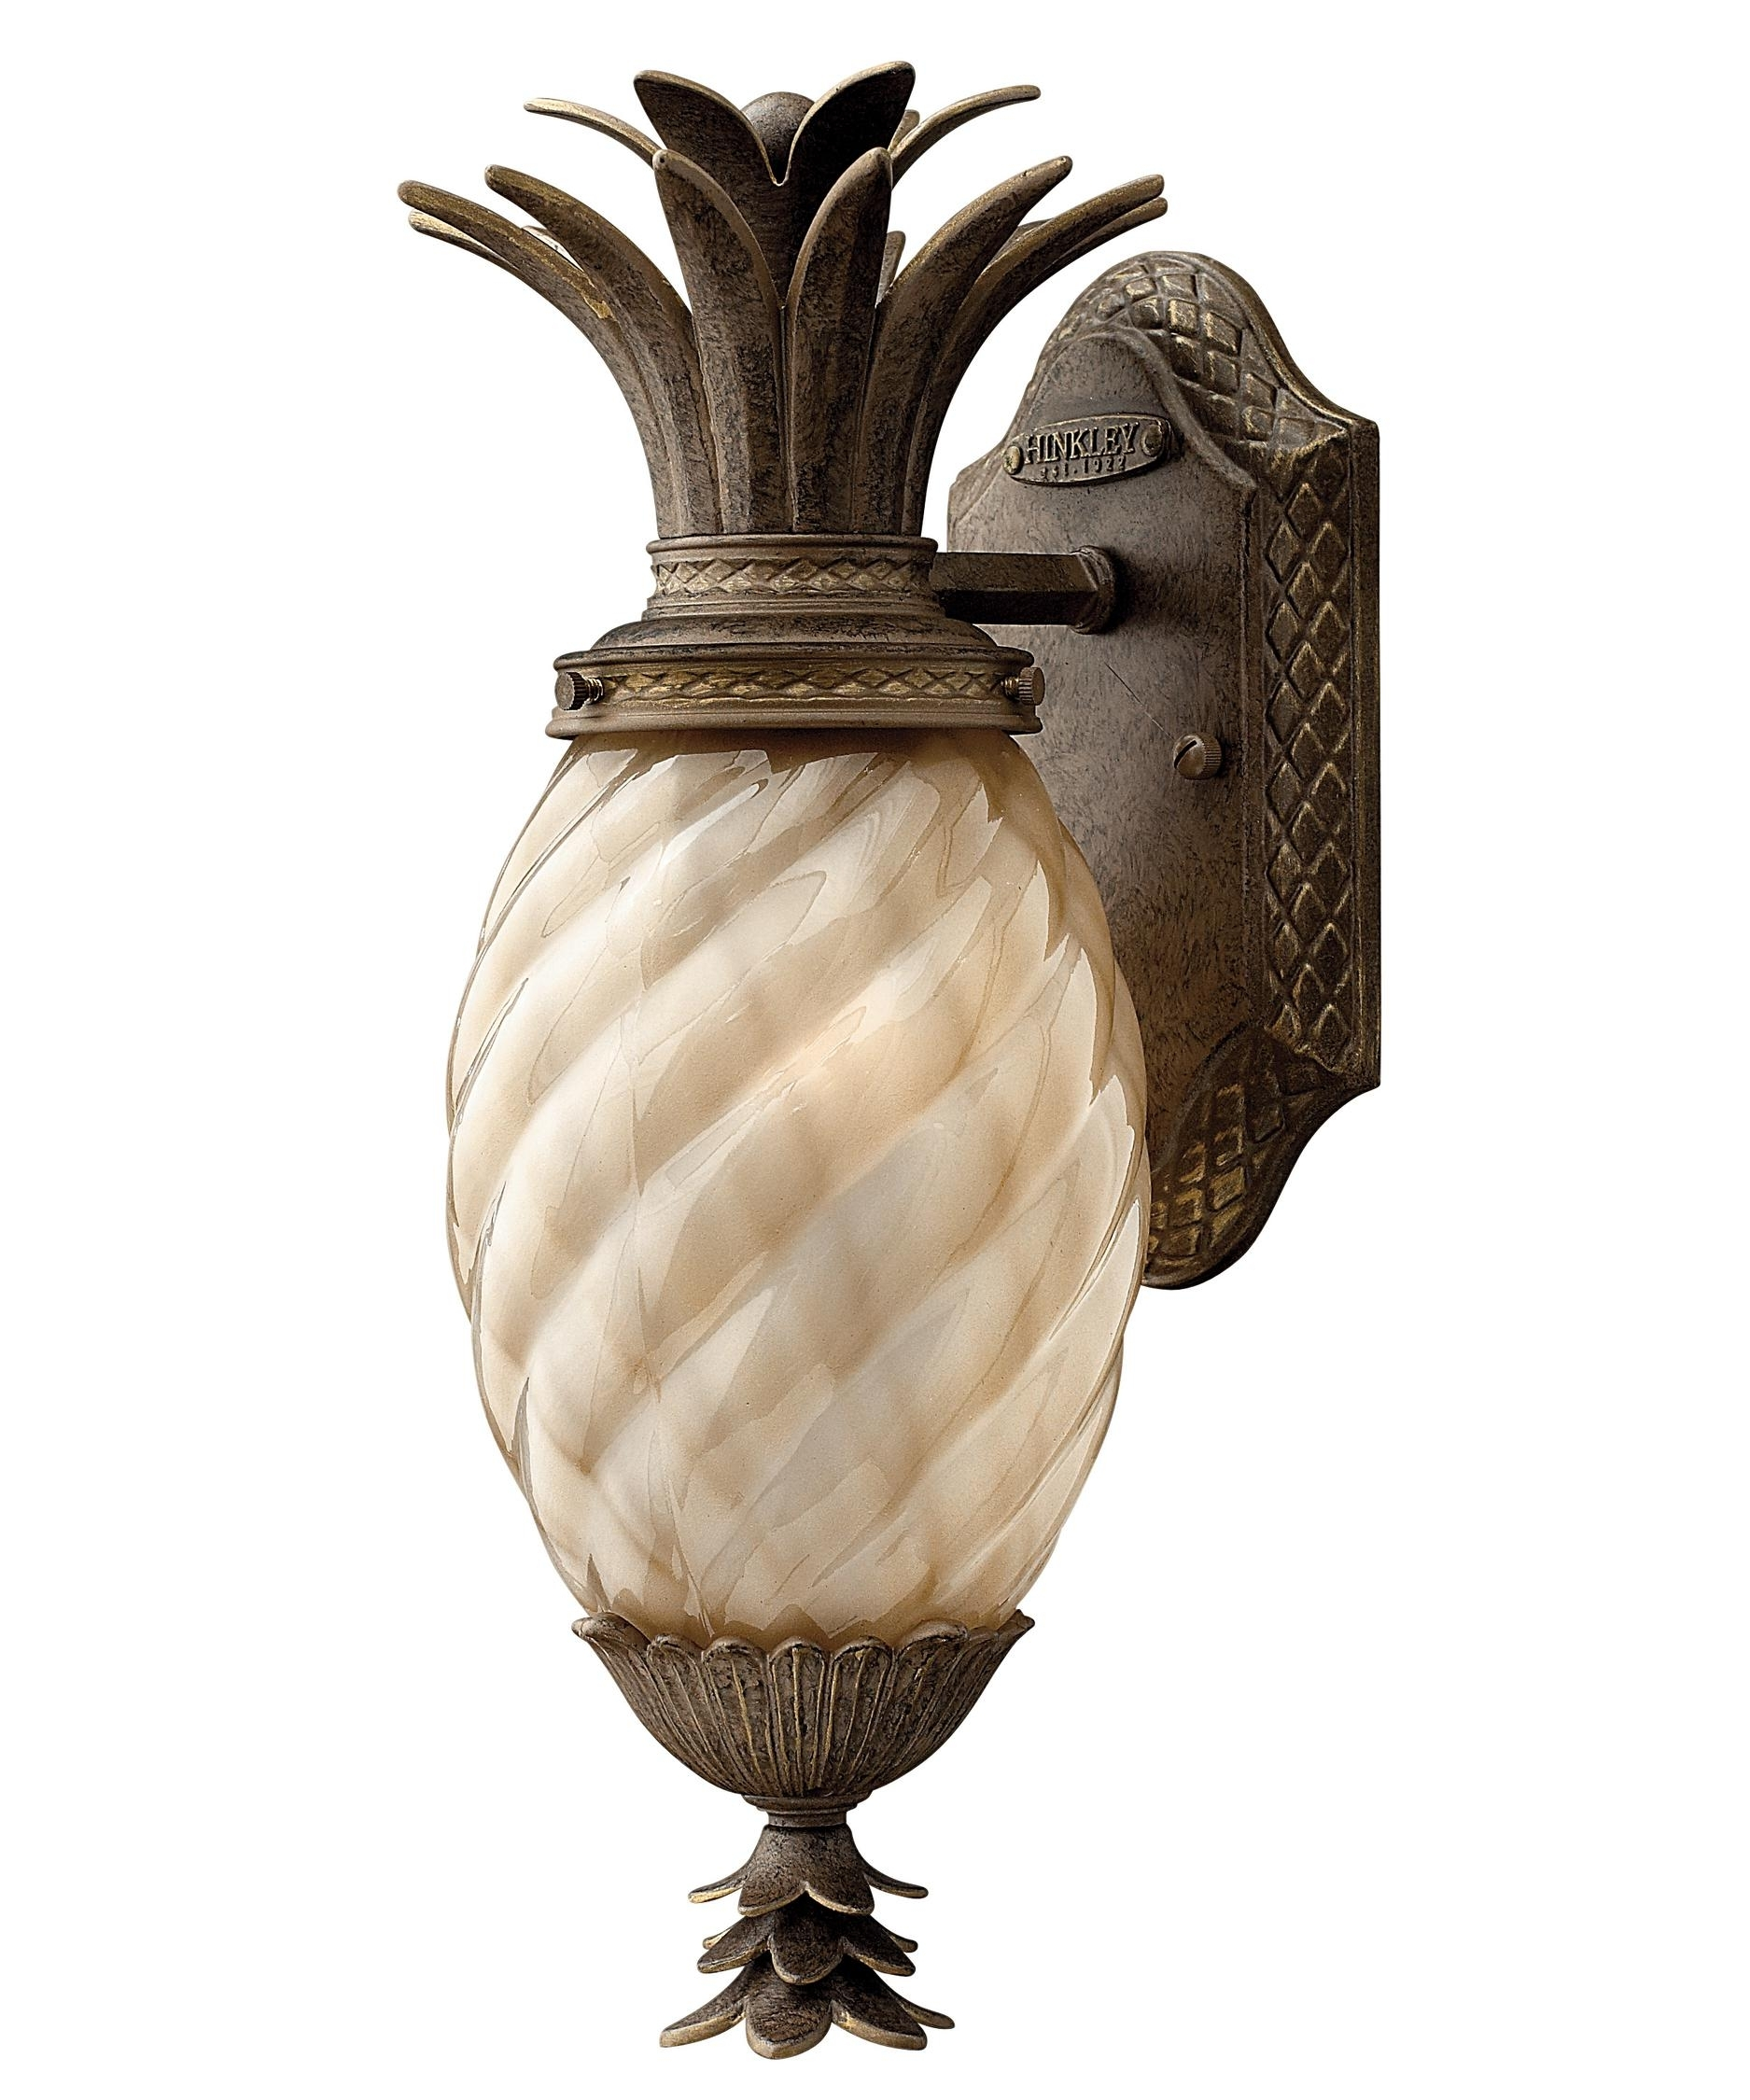 Outdoor Light : Inexpensive Pineapple Outdoor Lamp , Outdoor regarding Outdoor Pineapple Lanterns (Image 12 of 20)